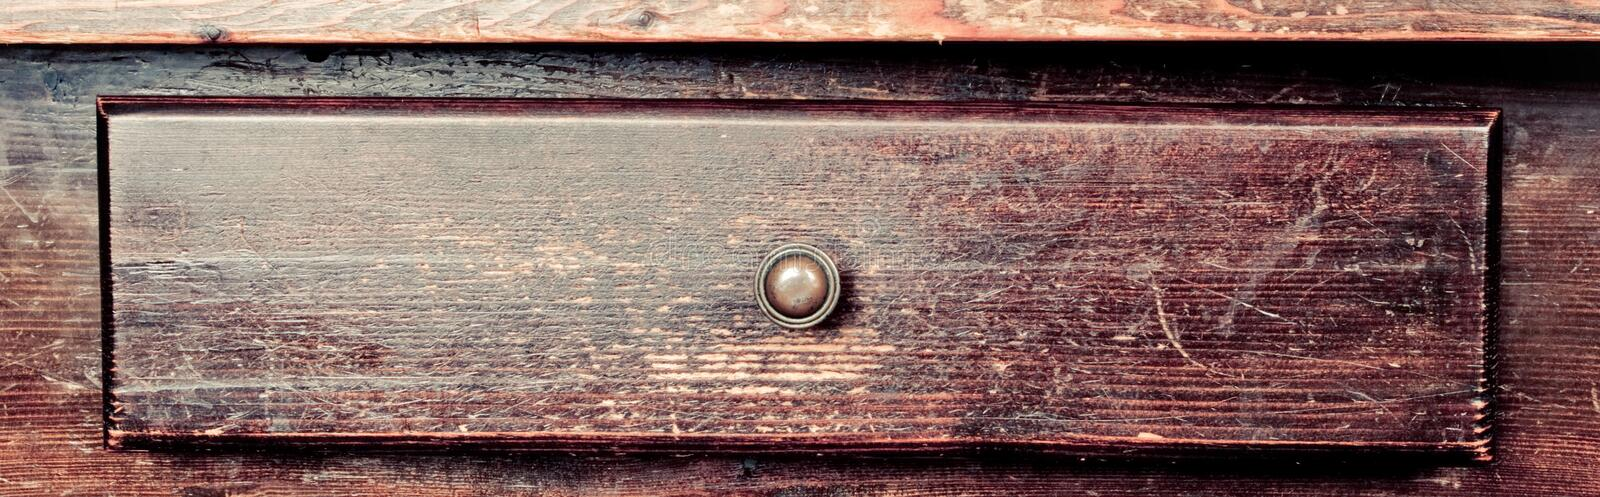 Old drawer royalty free stock photography